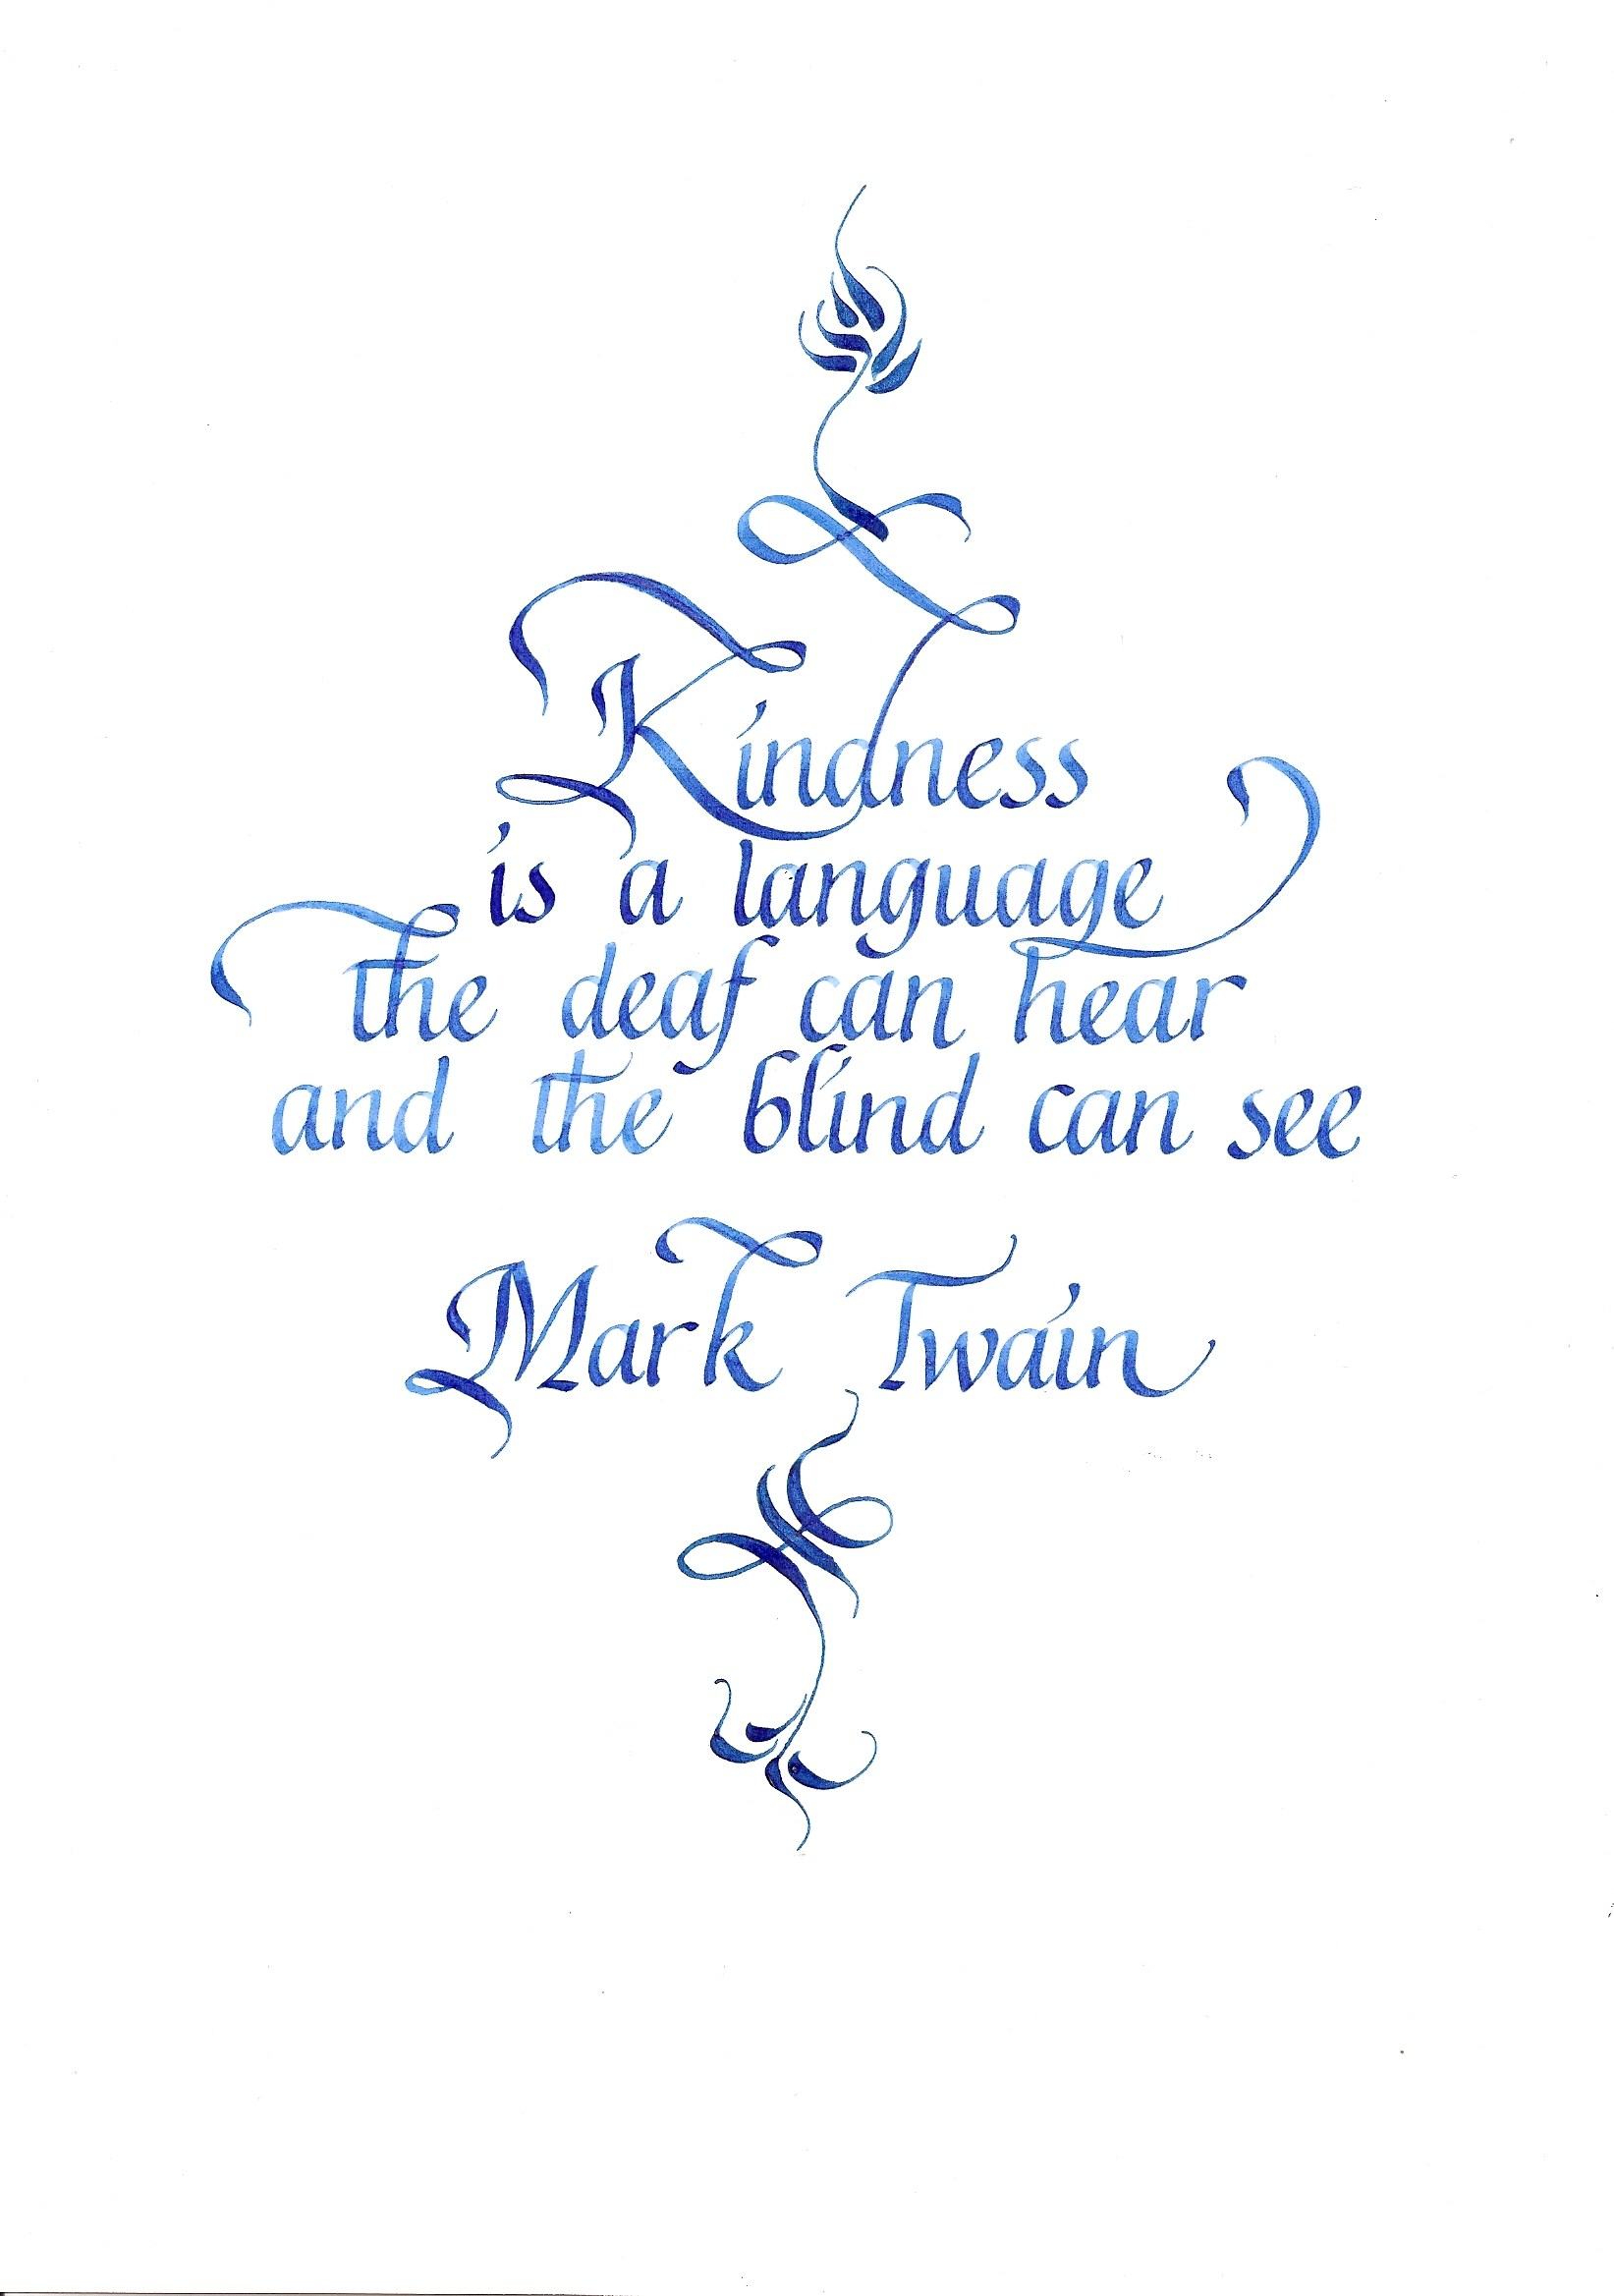 Blind Quotes Kindness Is A Language The Deaf Can Hear And The Blind Can See